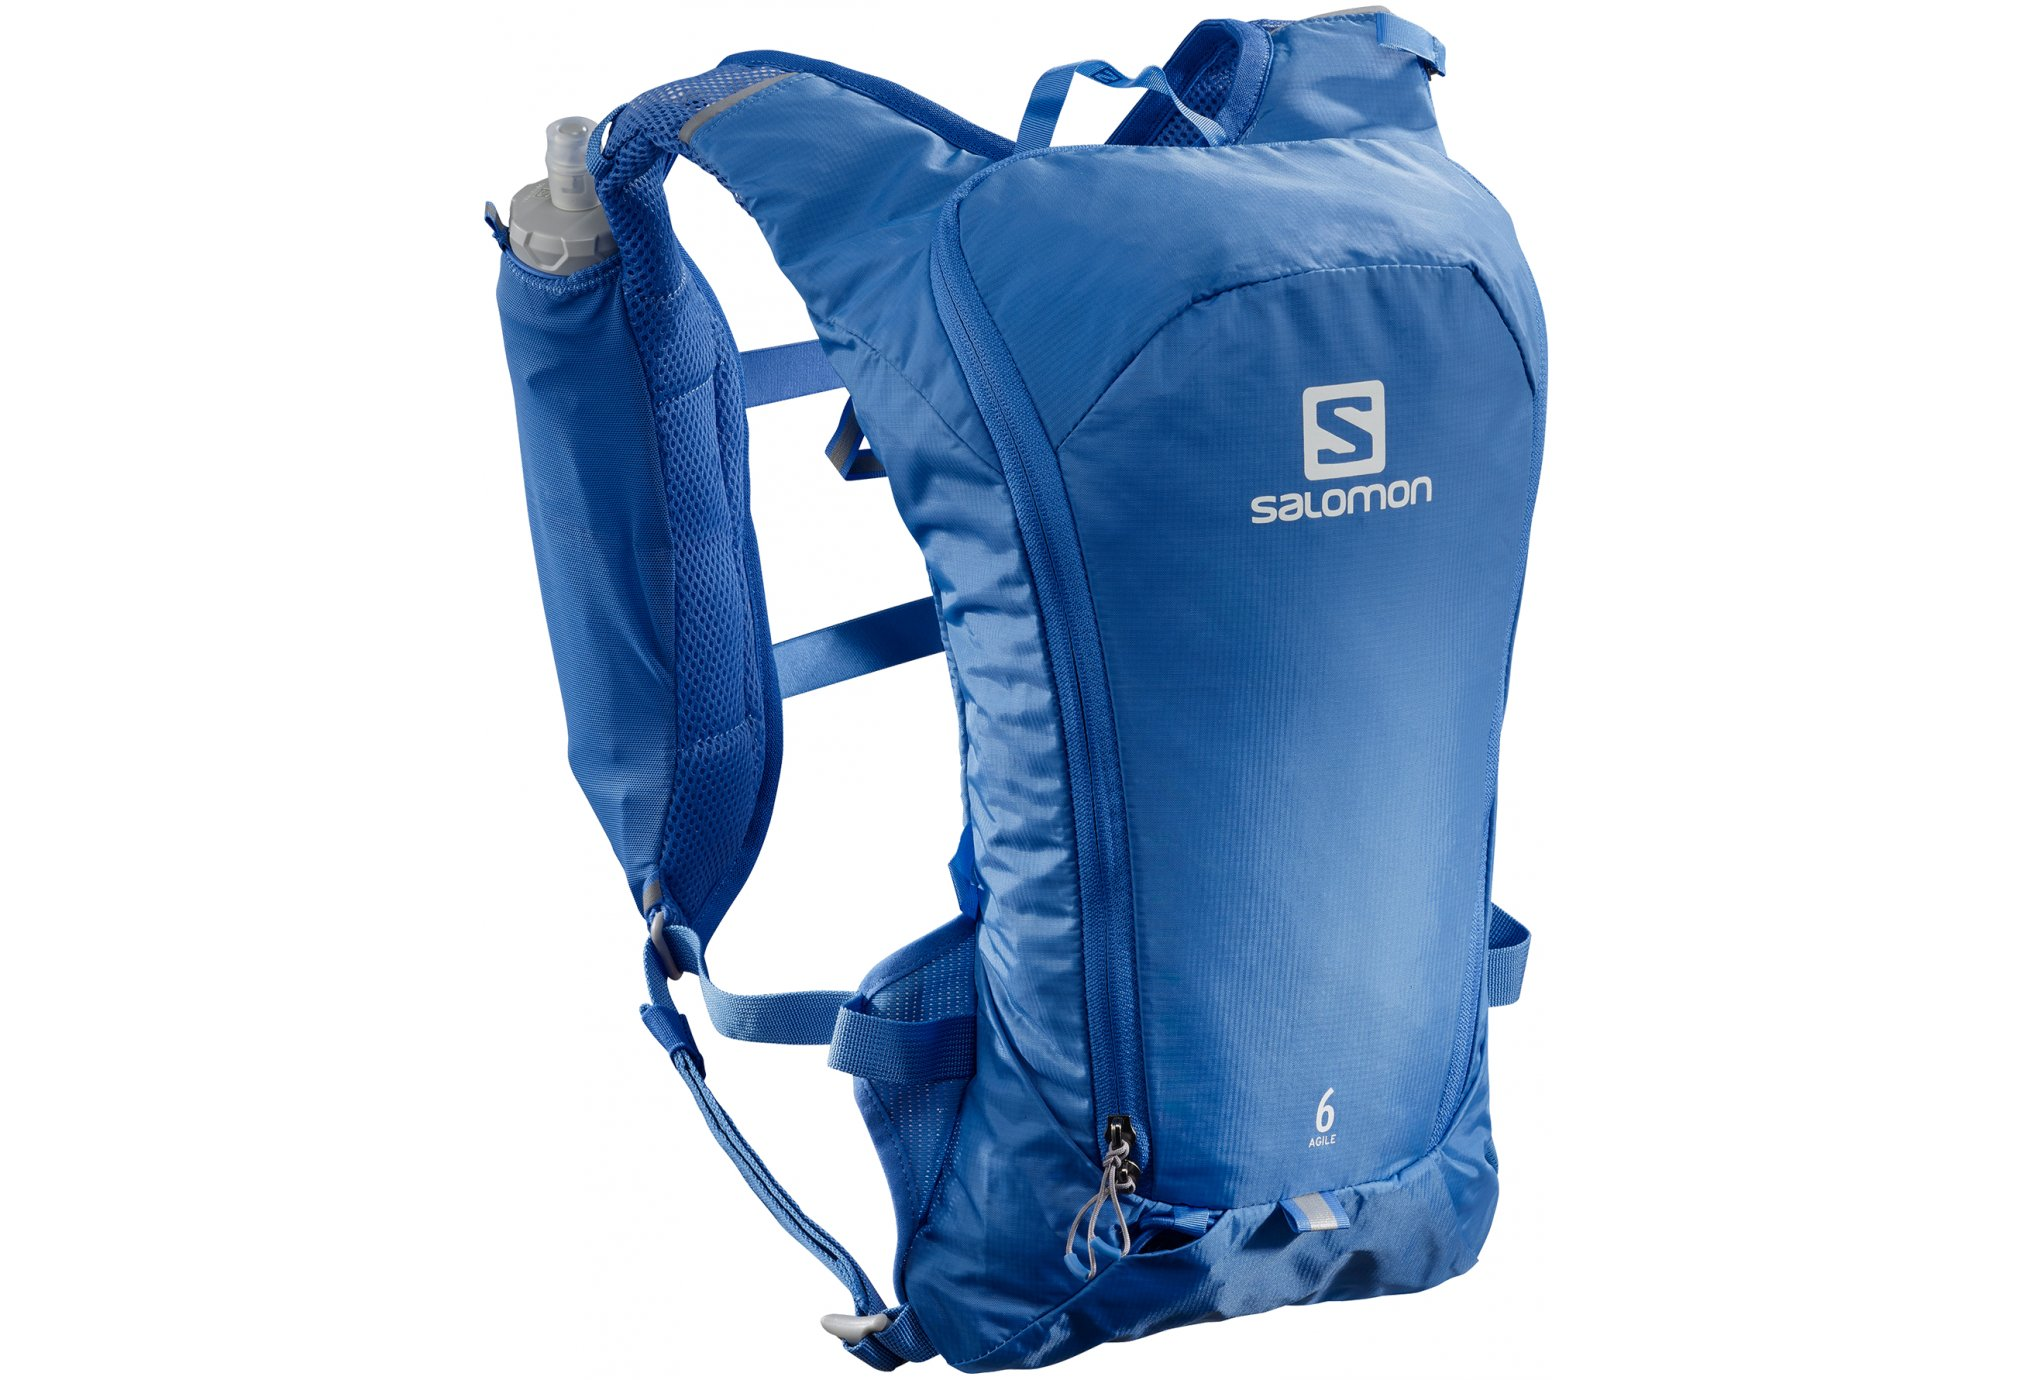 Salomon Agile 6 SET Sac hydratation / Gourde